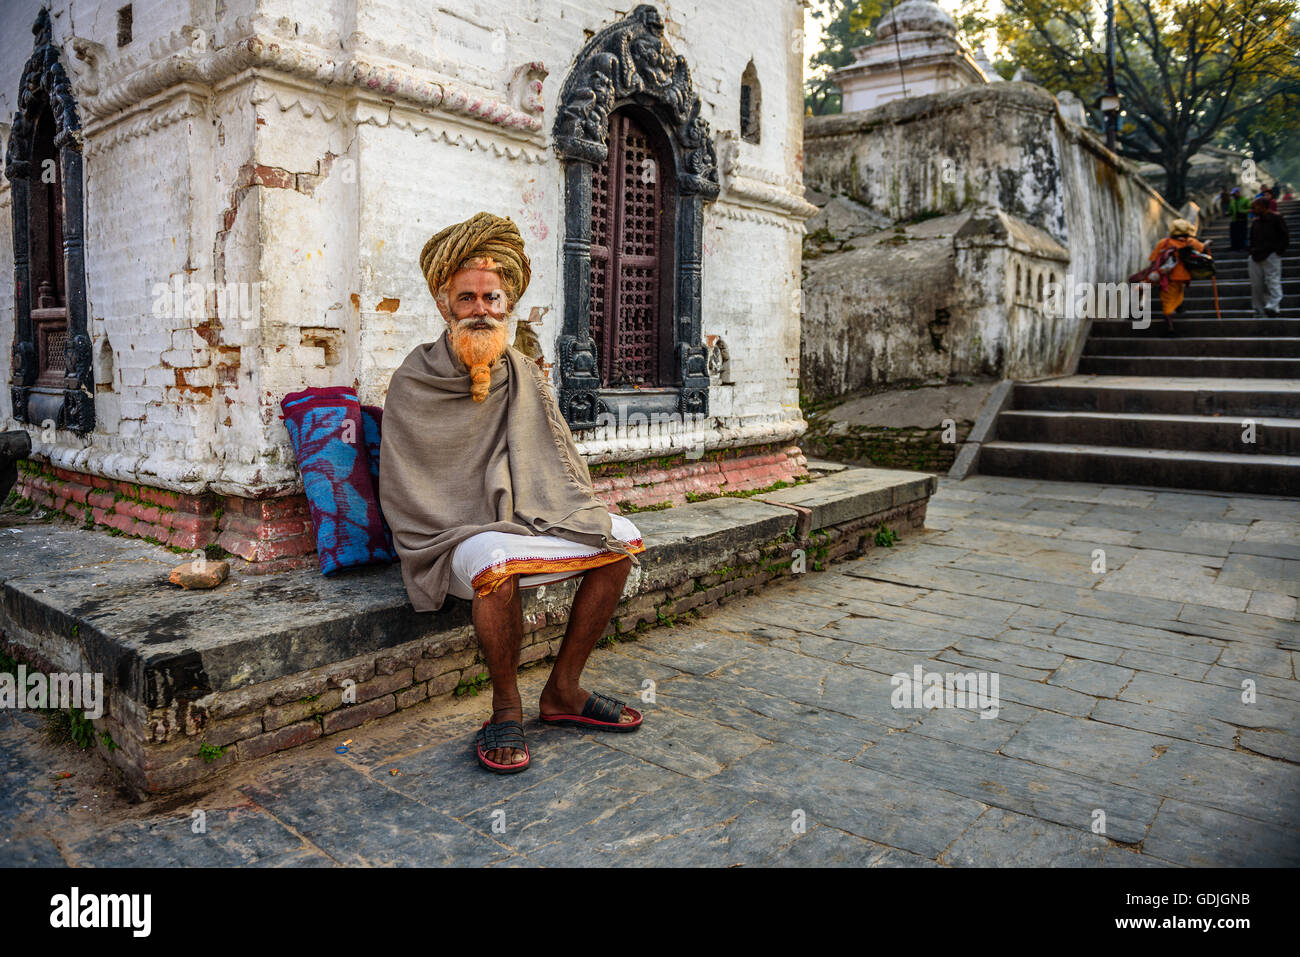 Wandering  sadhu baba (holy man) with traditional long hair in ancient Pashupatinath Temple - Stock Image